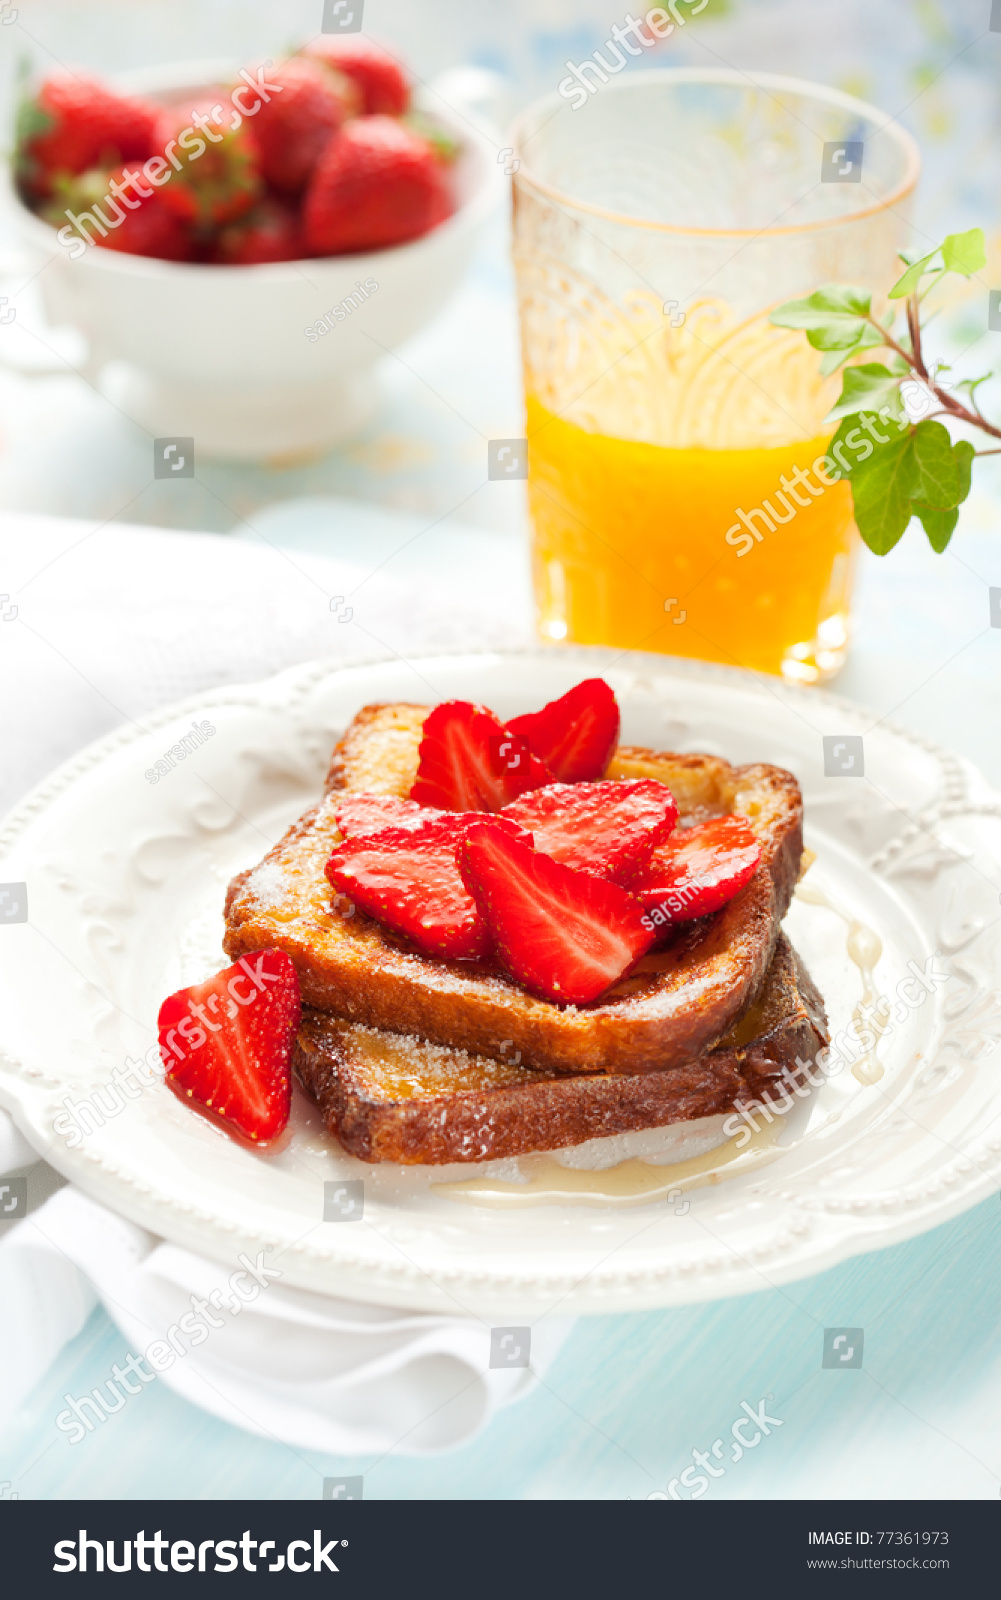 how to make french toast with sugar